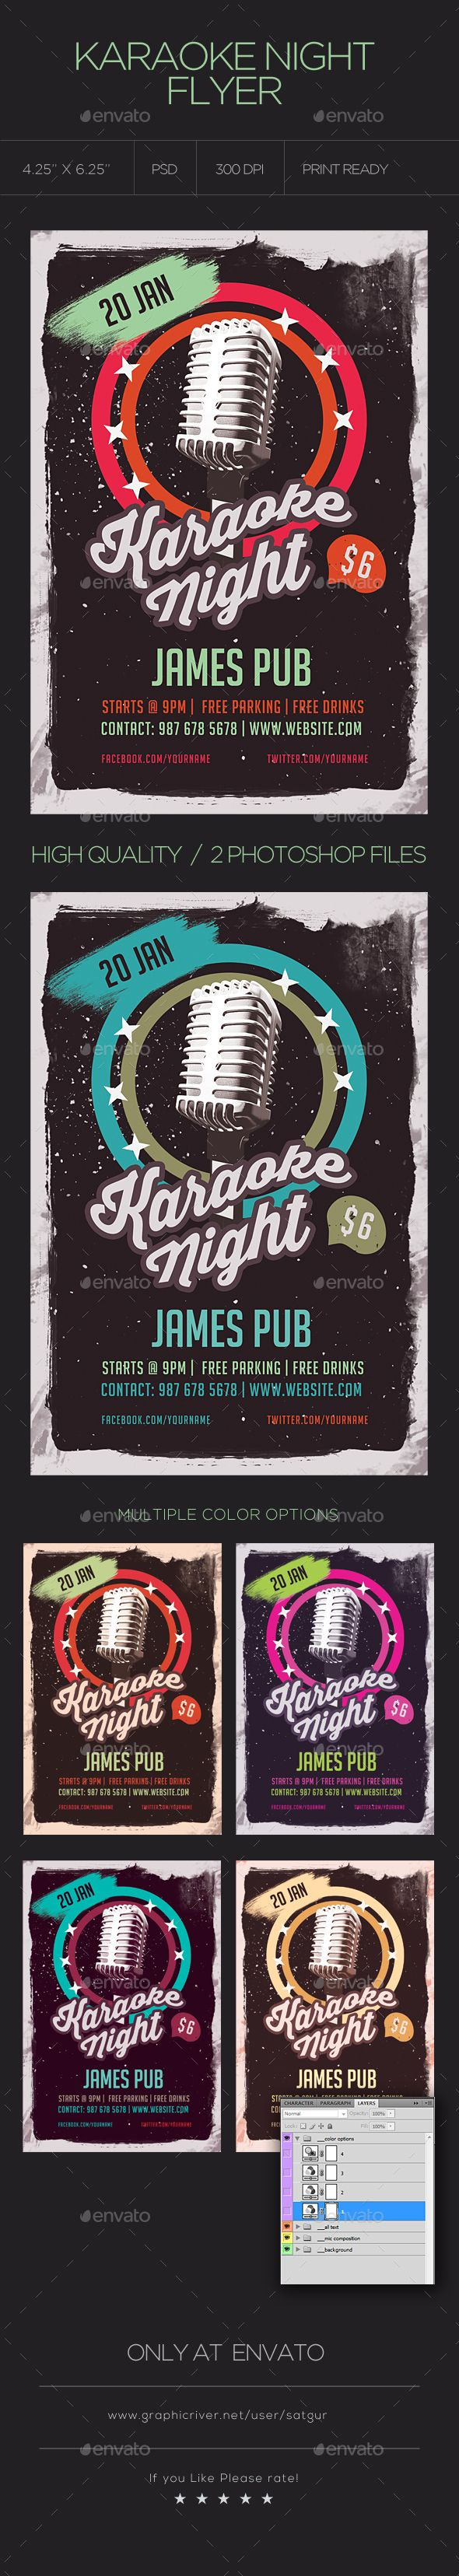 Karaoke Night Flyer Template PSD